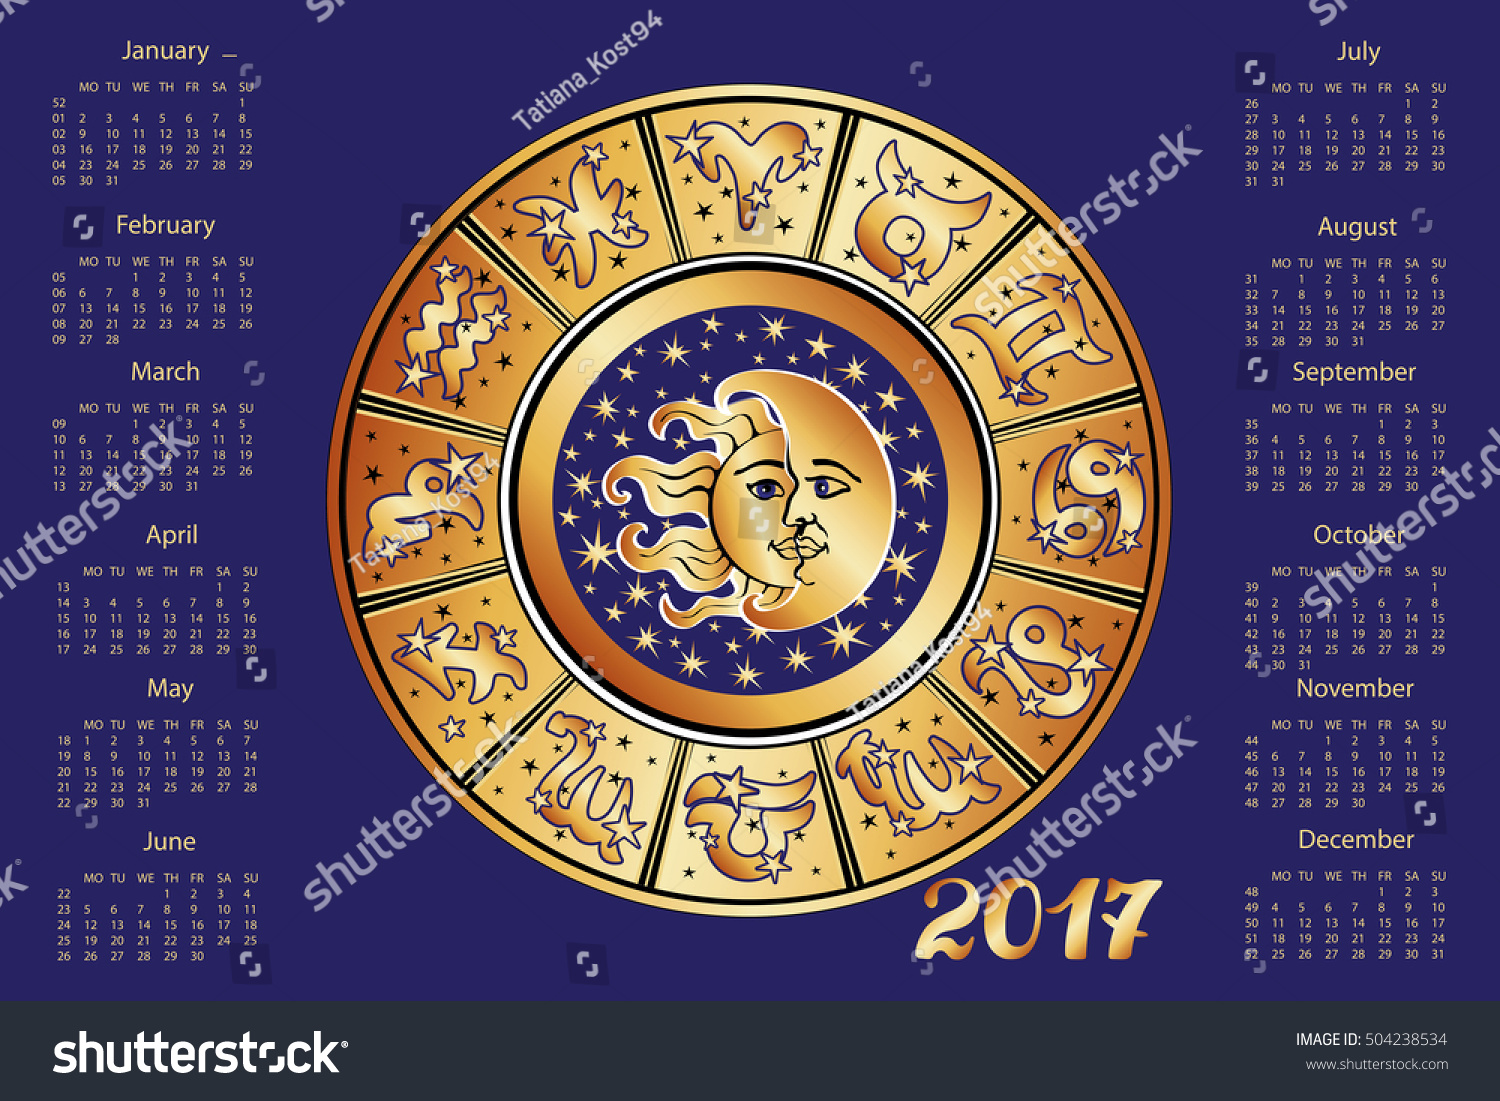 horoscope en espanol 2017 new year calendarhoroscope circle zodiac stock vector. Black Bedroom Furniture Sets. Home Design Ideas